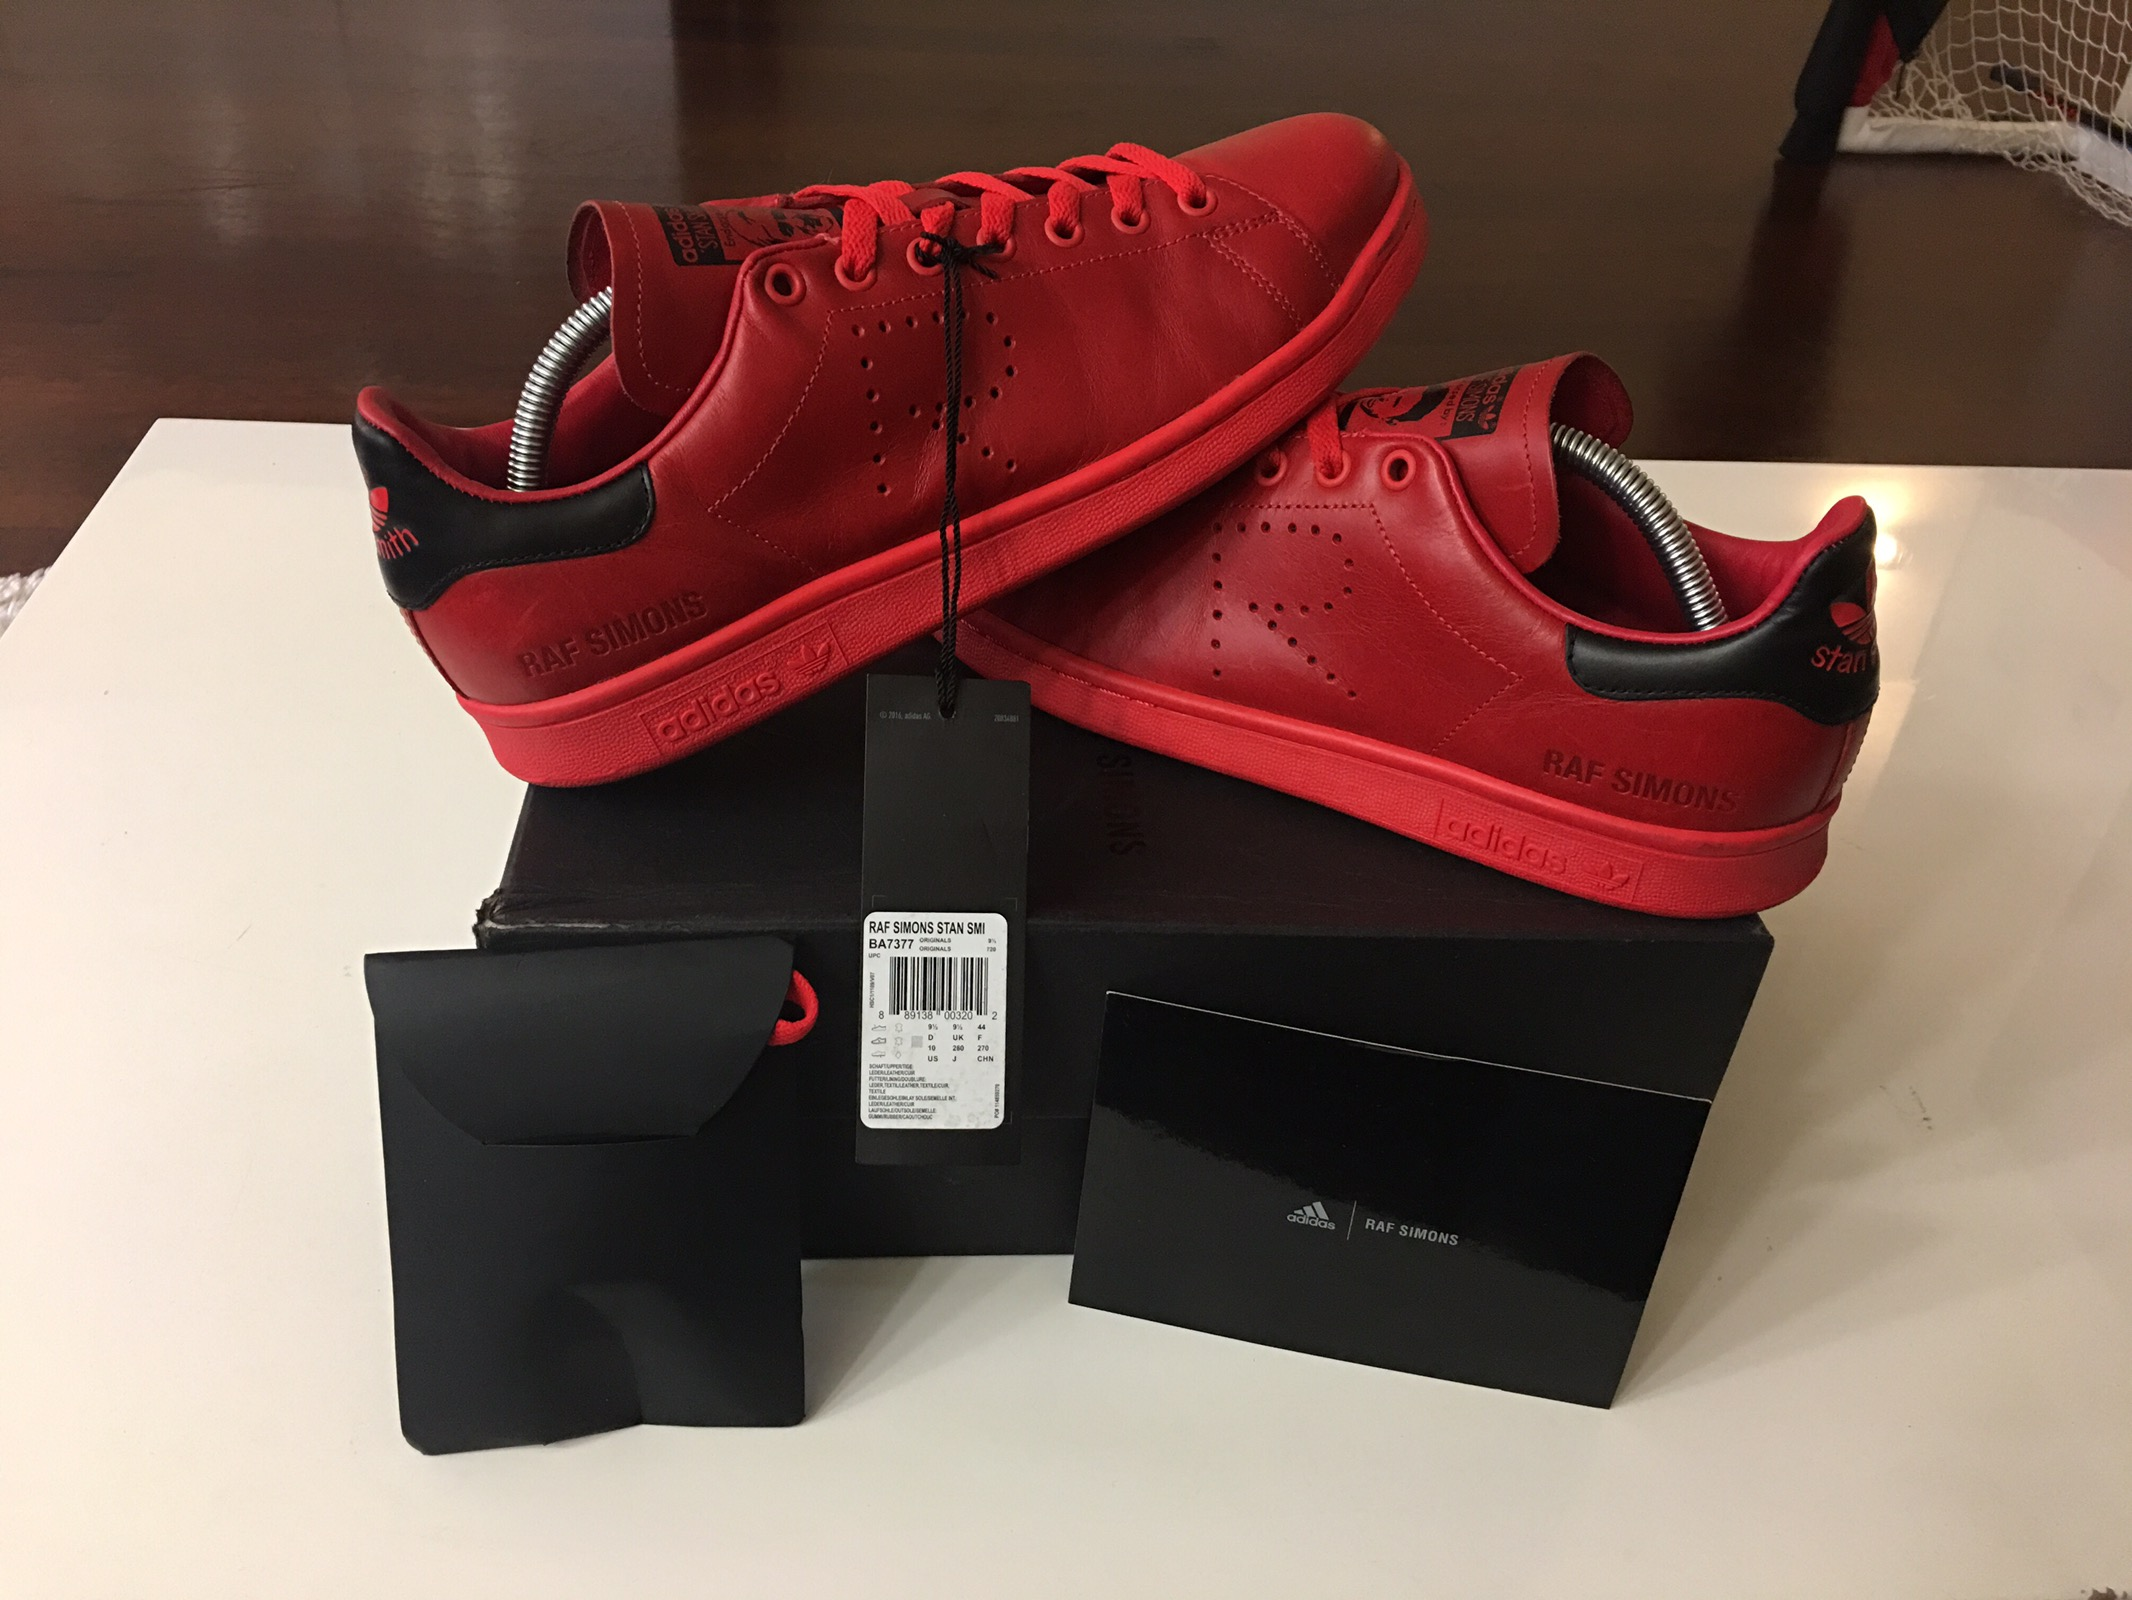 new concept 0b214 d9bab Adidas Adidas Raf Simons Stan Smith Tomato Red 400 Value High Quality  Leather Size 10 - Low-Top Sneakers for Sale - Grailed